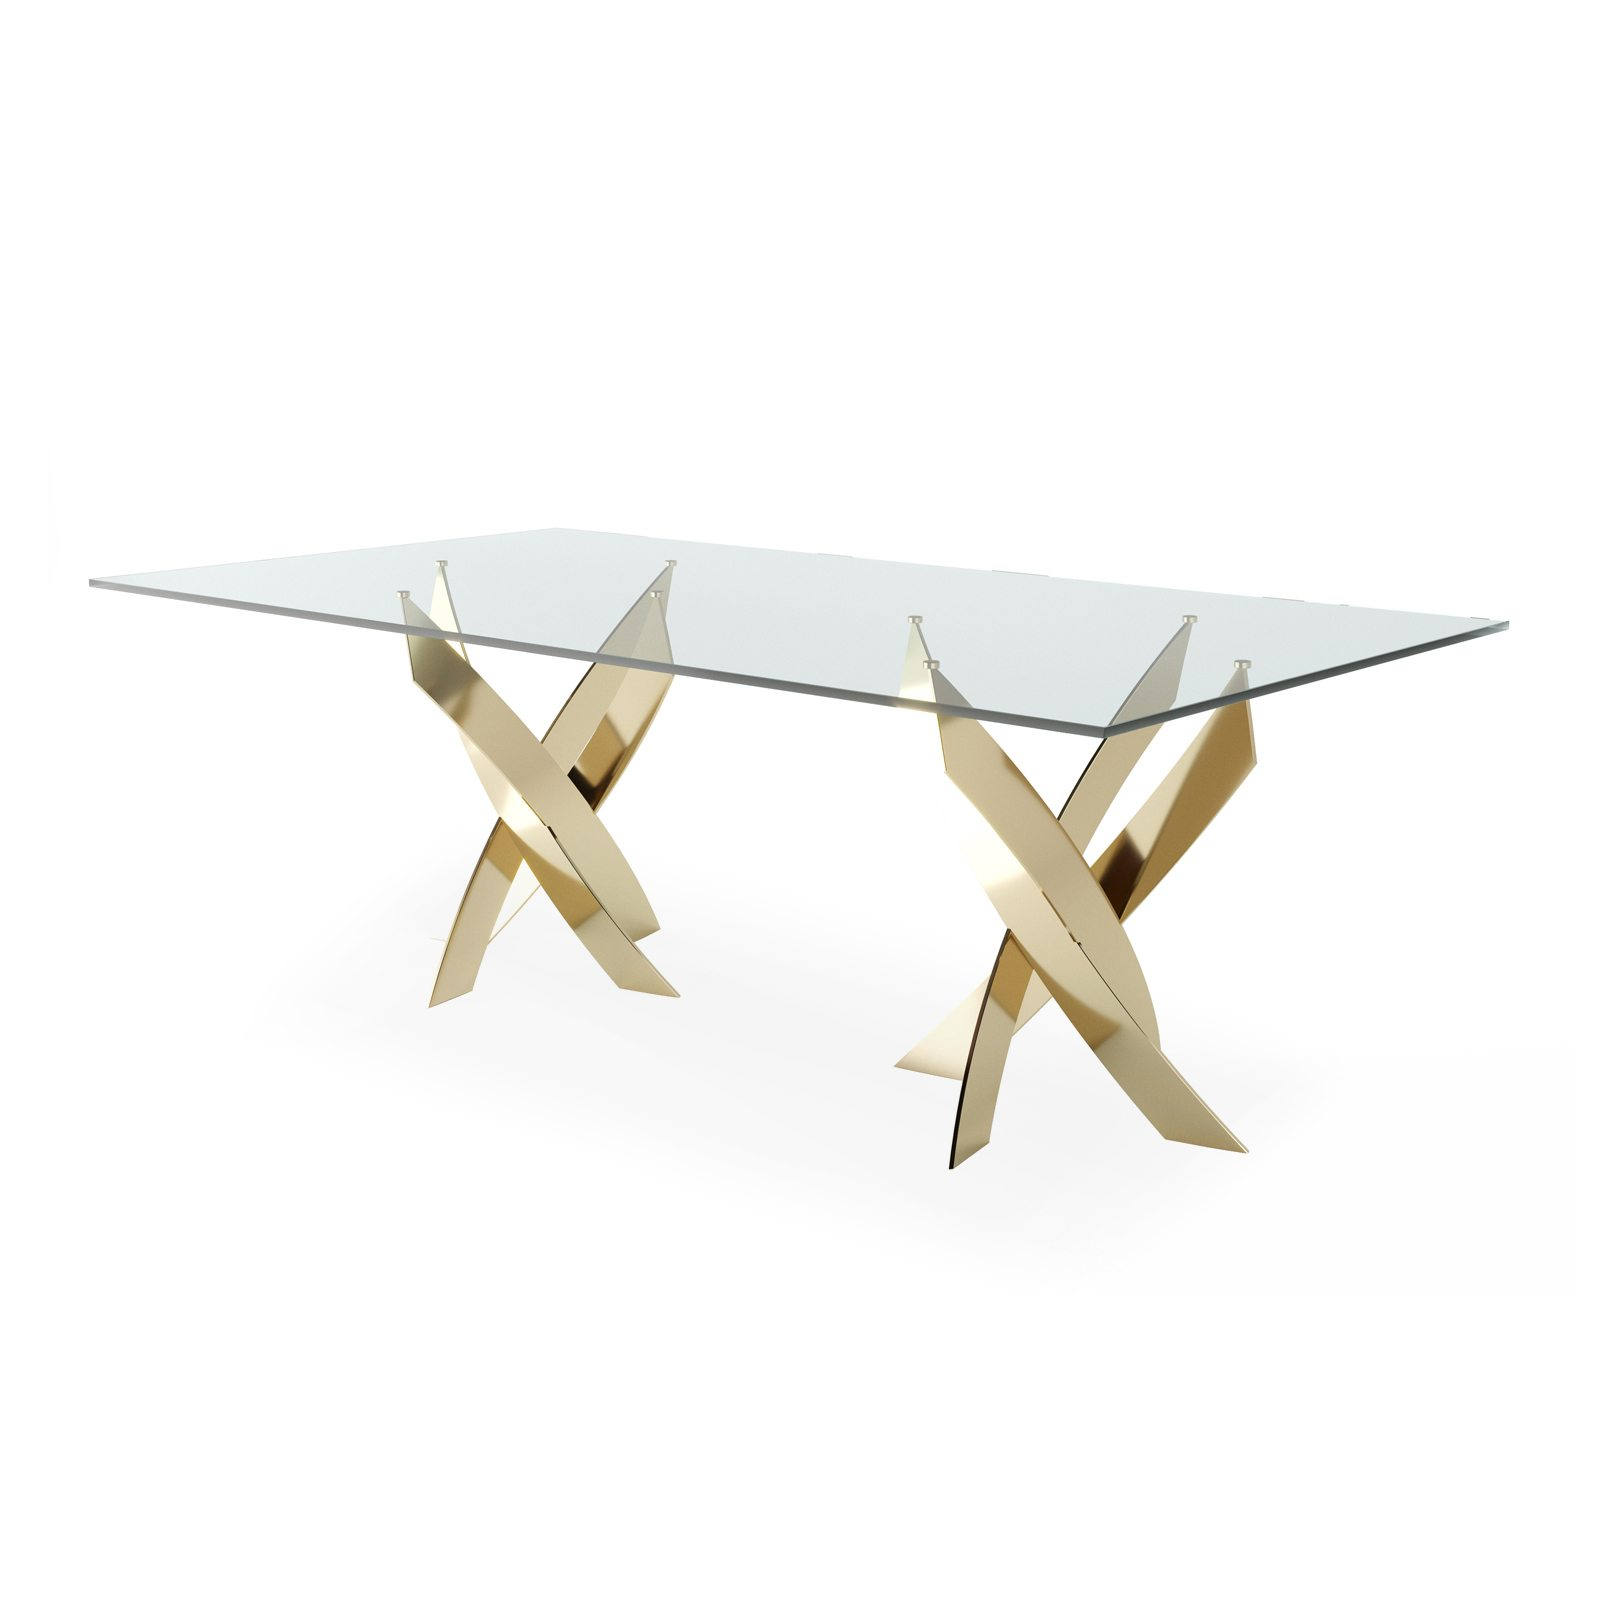 Helix-Dining-Table-Rectangle-Brass-by-Bonham-&-Bonham-02